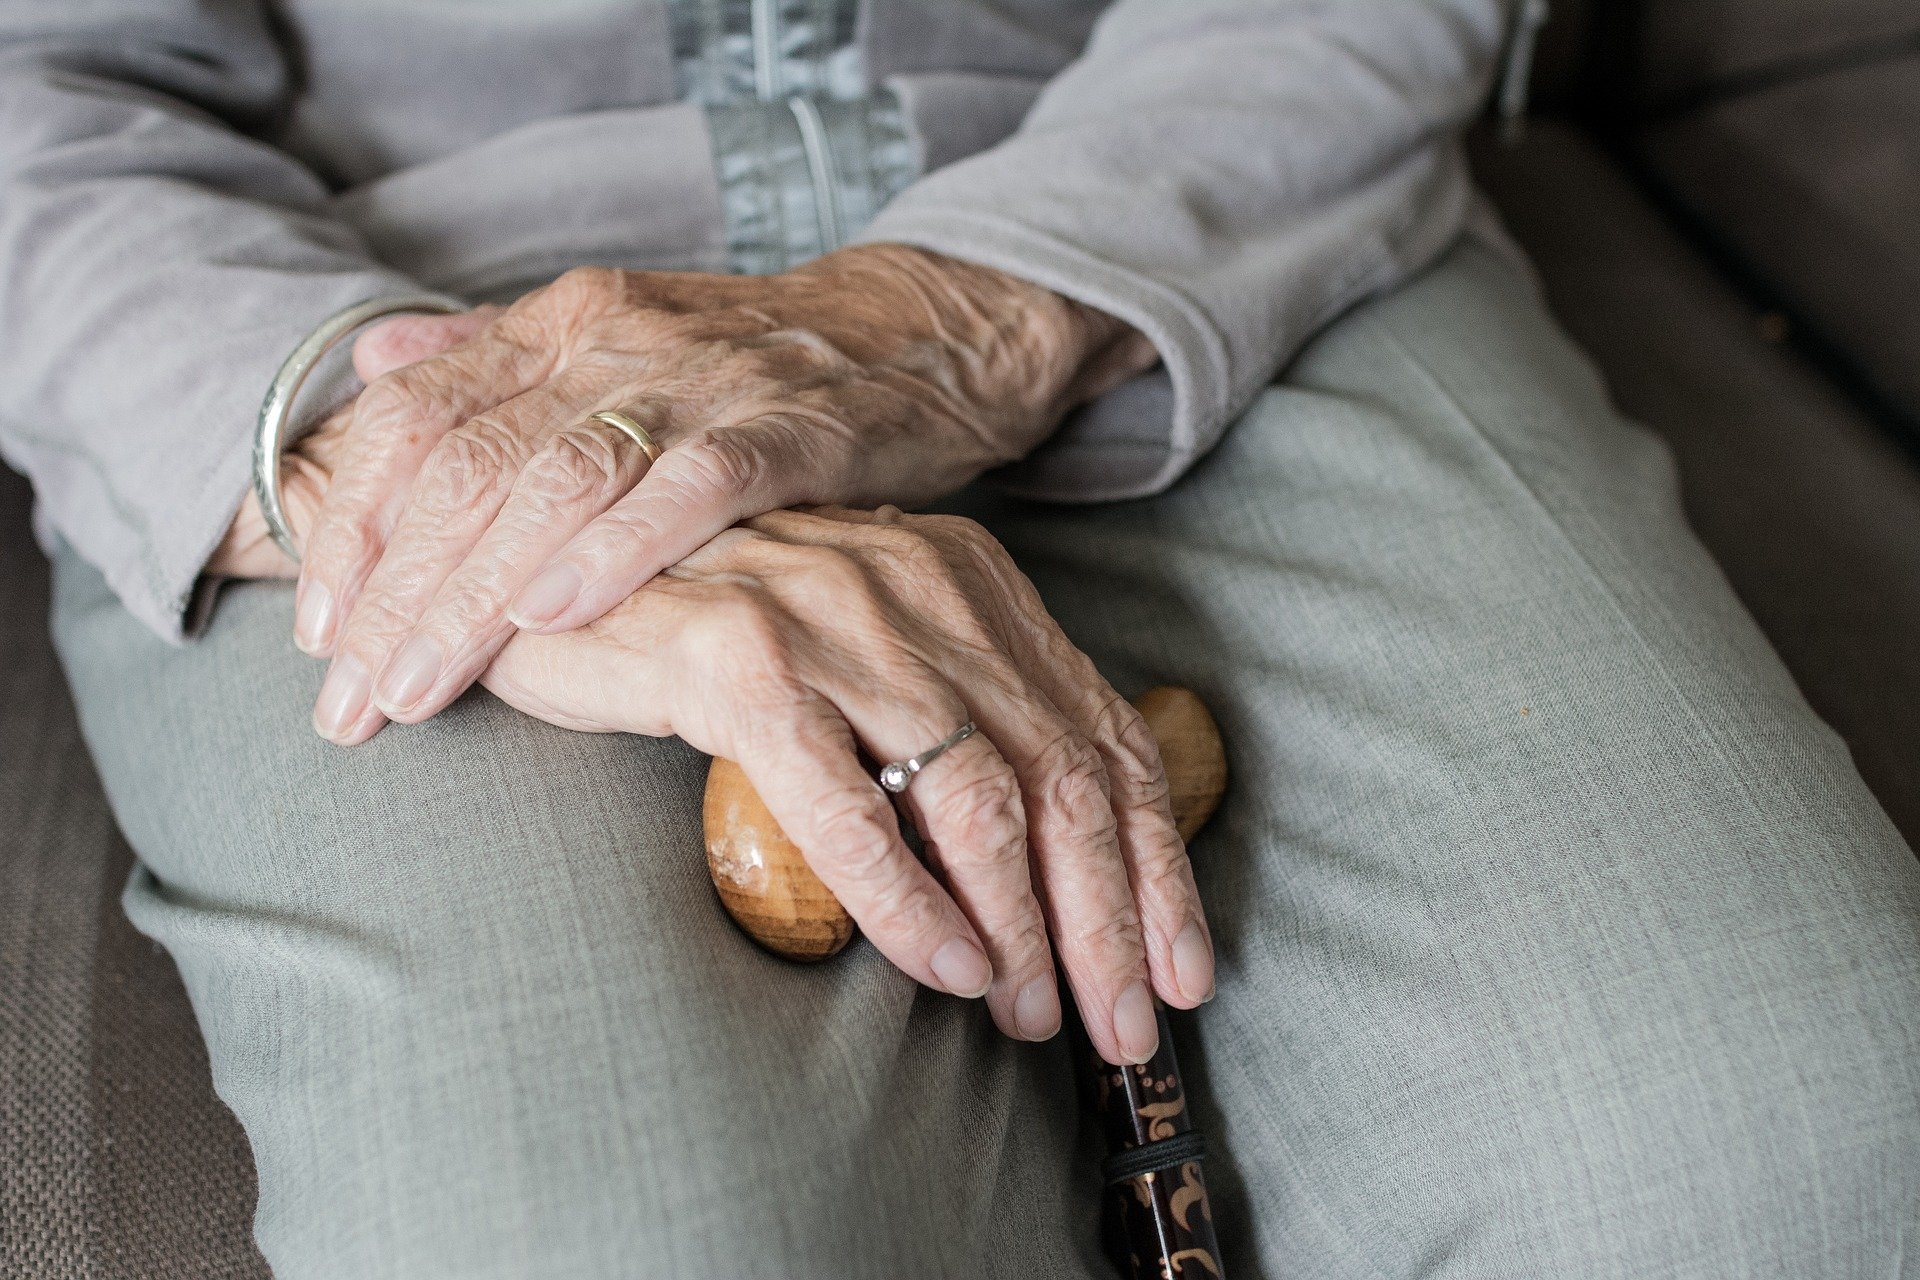 European Commission Launches Green Paper and Consultation on Europe's Ageing Society